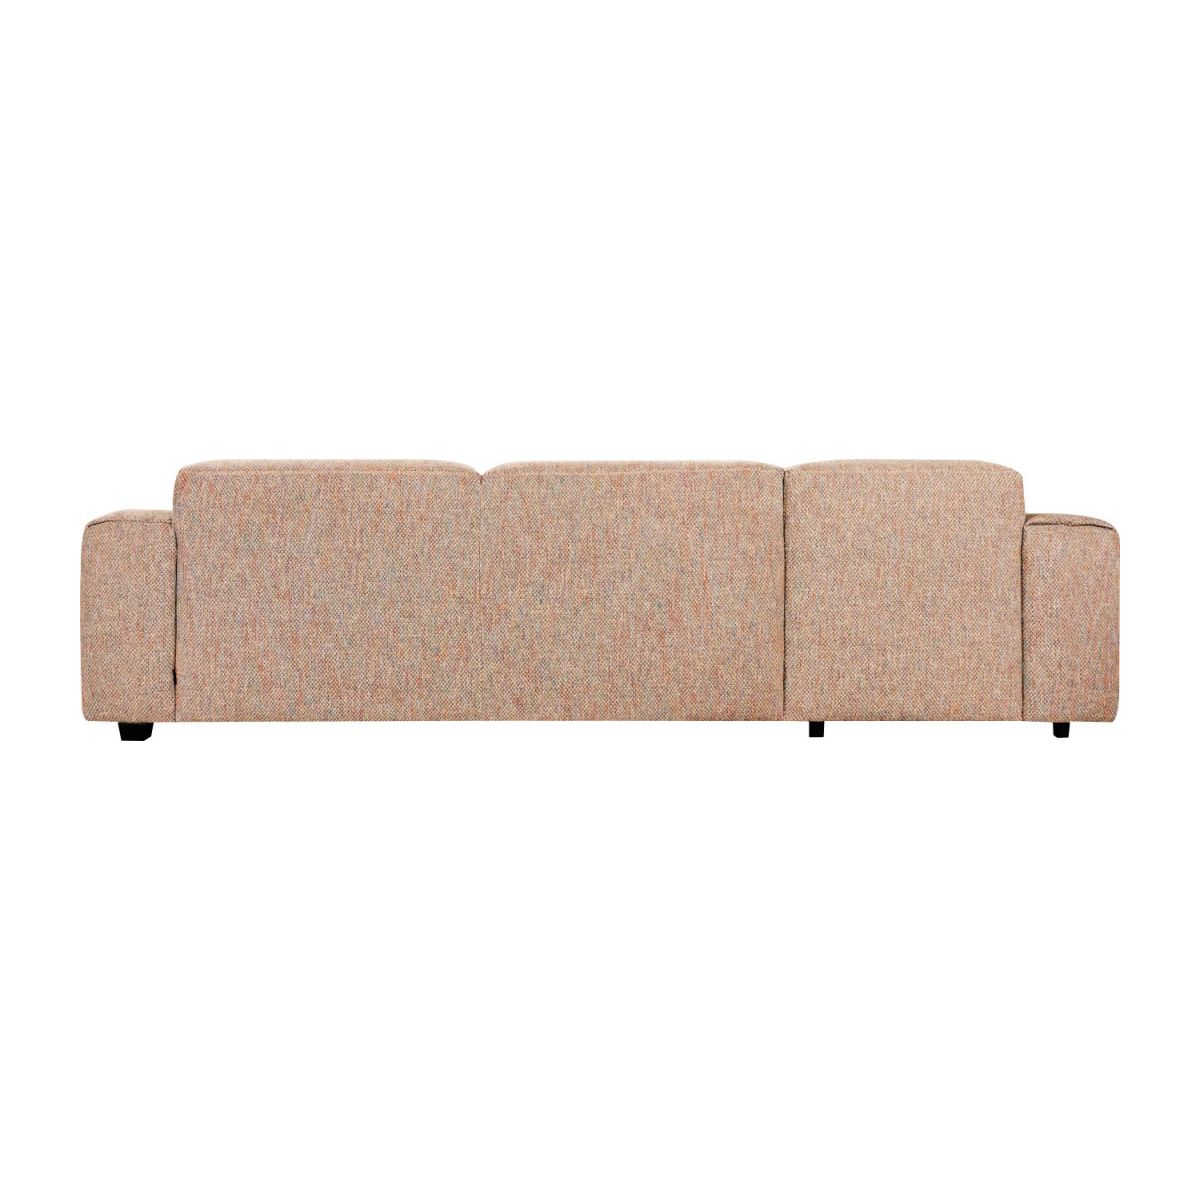 3-Sitzer Sofa mit Chaiselongue links aus Bellagio-Stoff - Orange n°6